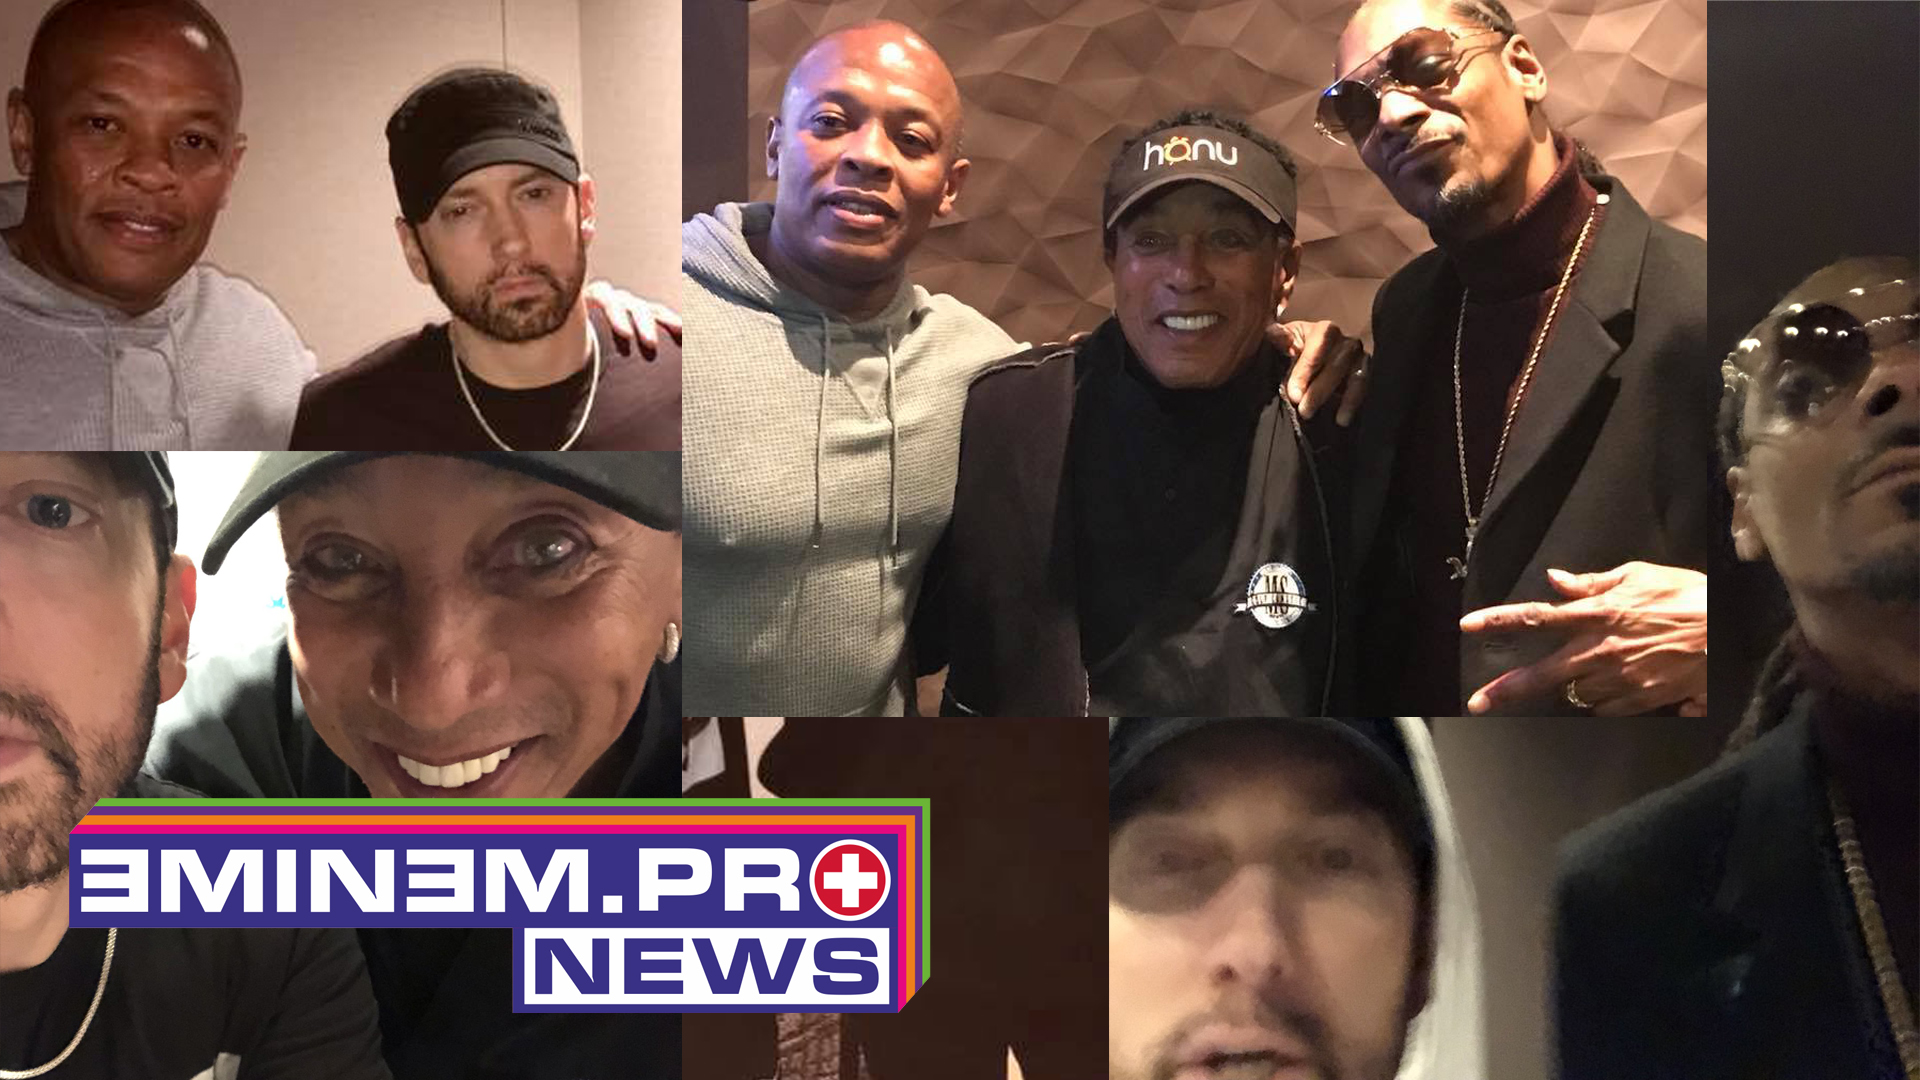 """New Dr. Dre and Snoop Dogg track snippet, probably from Eminem's soundtrack album of """"Bodied"""" movie"""